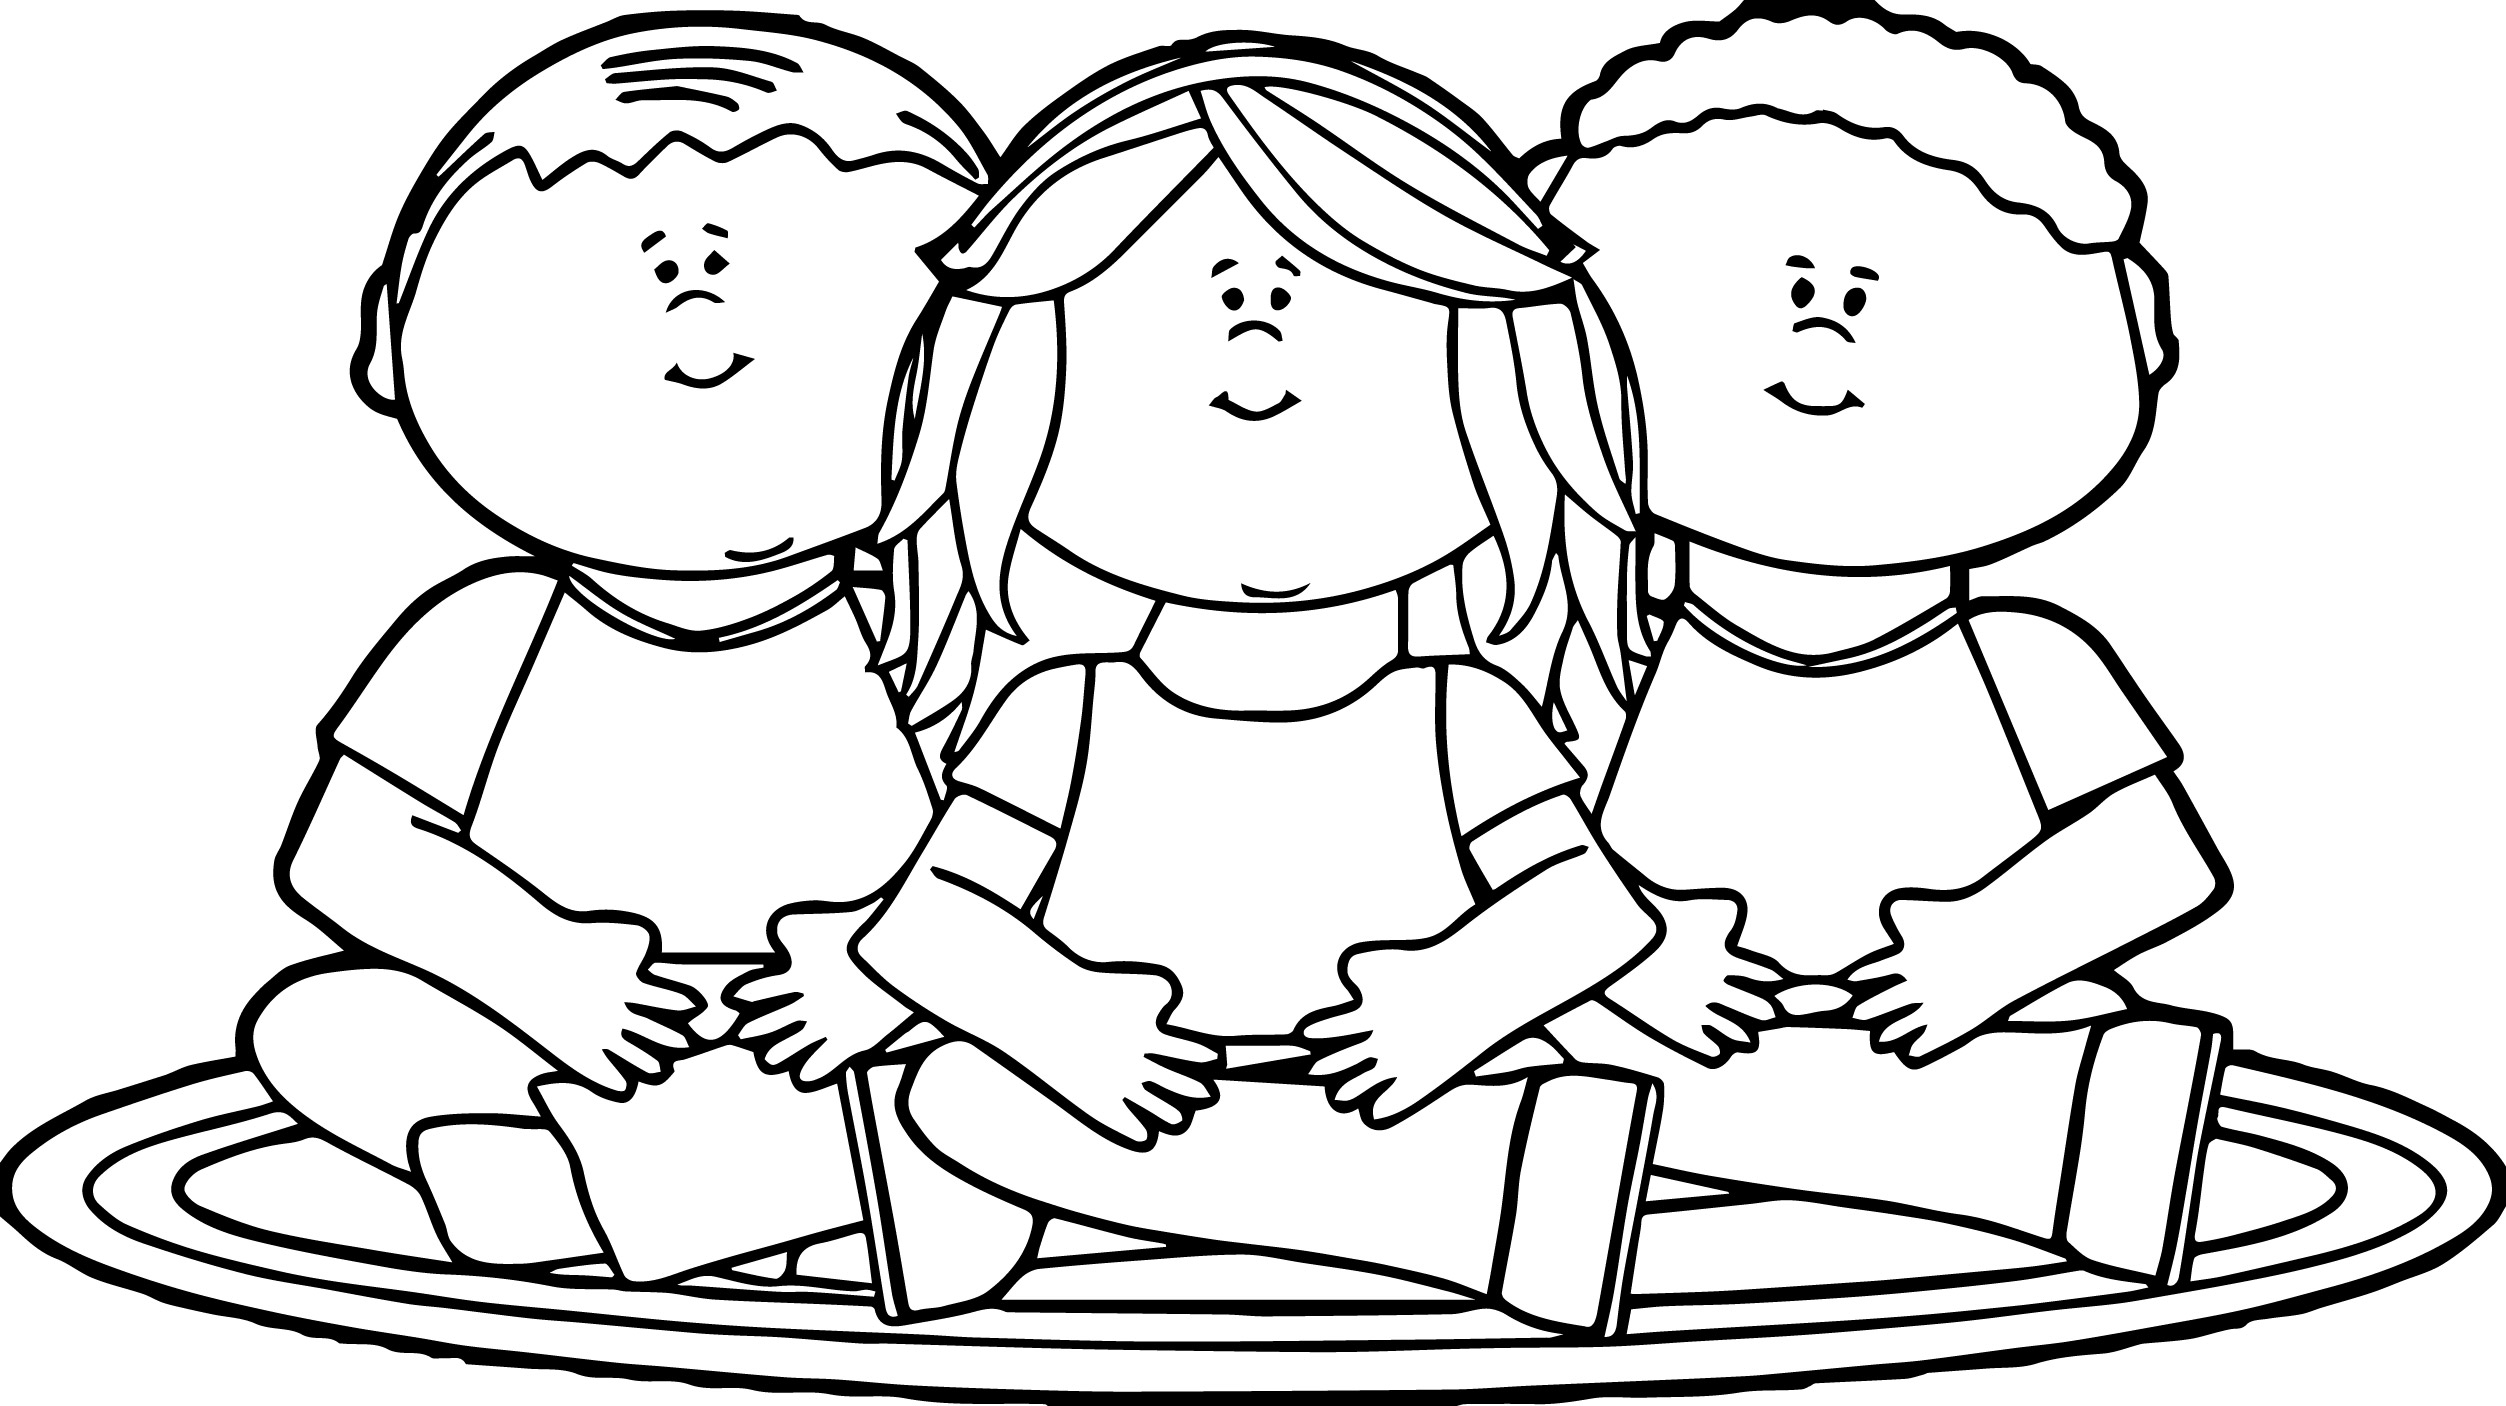 Kids Sitting On School Rug Kids Coloring Page Wecoloringpage